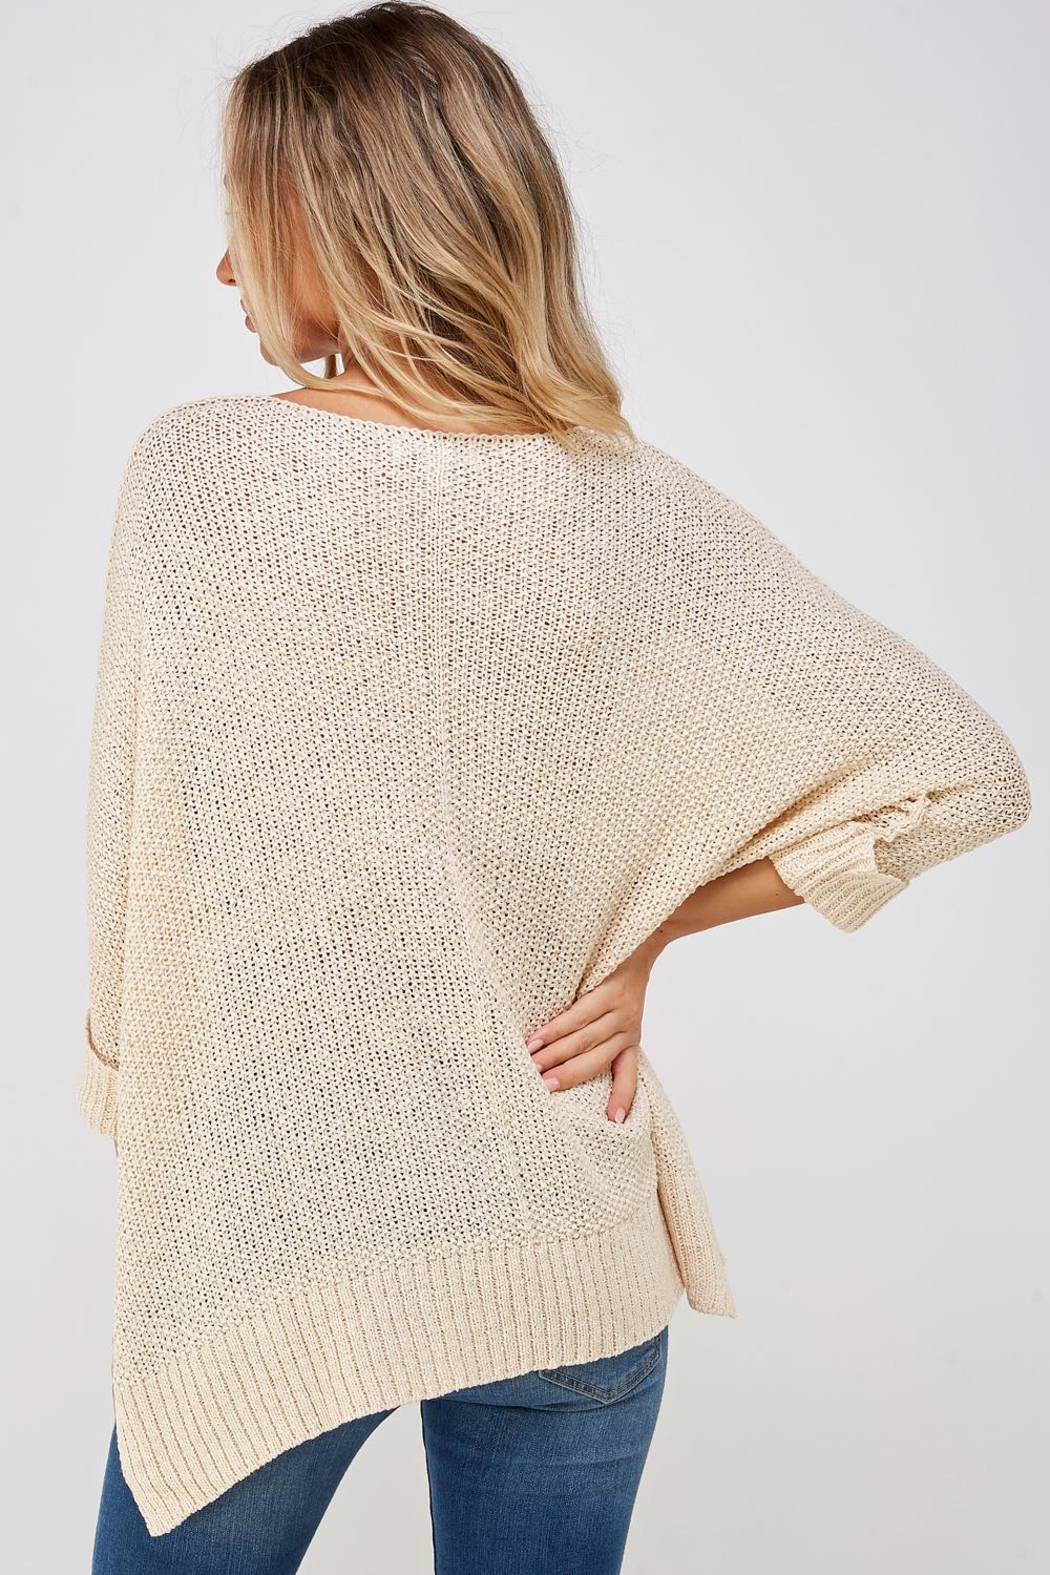 She + Sky High-Lo Knit Sweater - Back Cropped Image